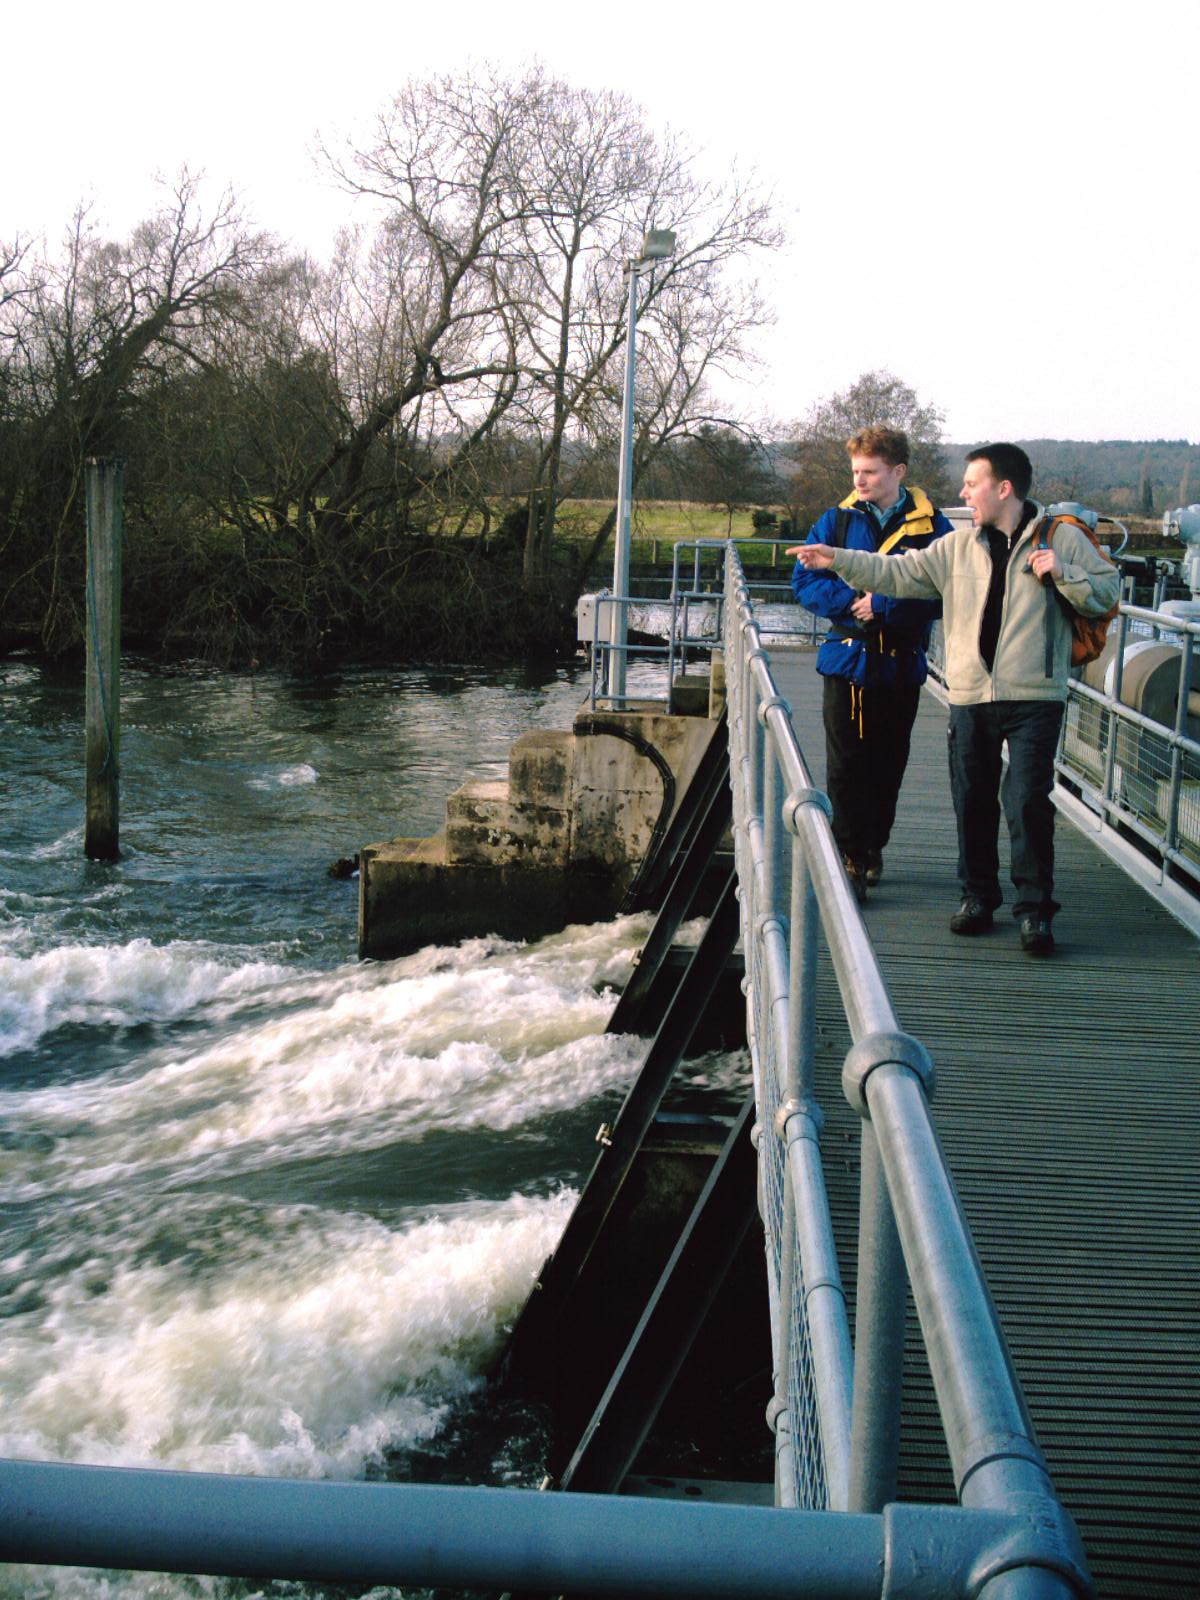 Book 1 Walk 1 Henley-on-Thames (round walk) The weir at Hambledon Lock. D.Allen vivitar 5199mp